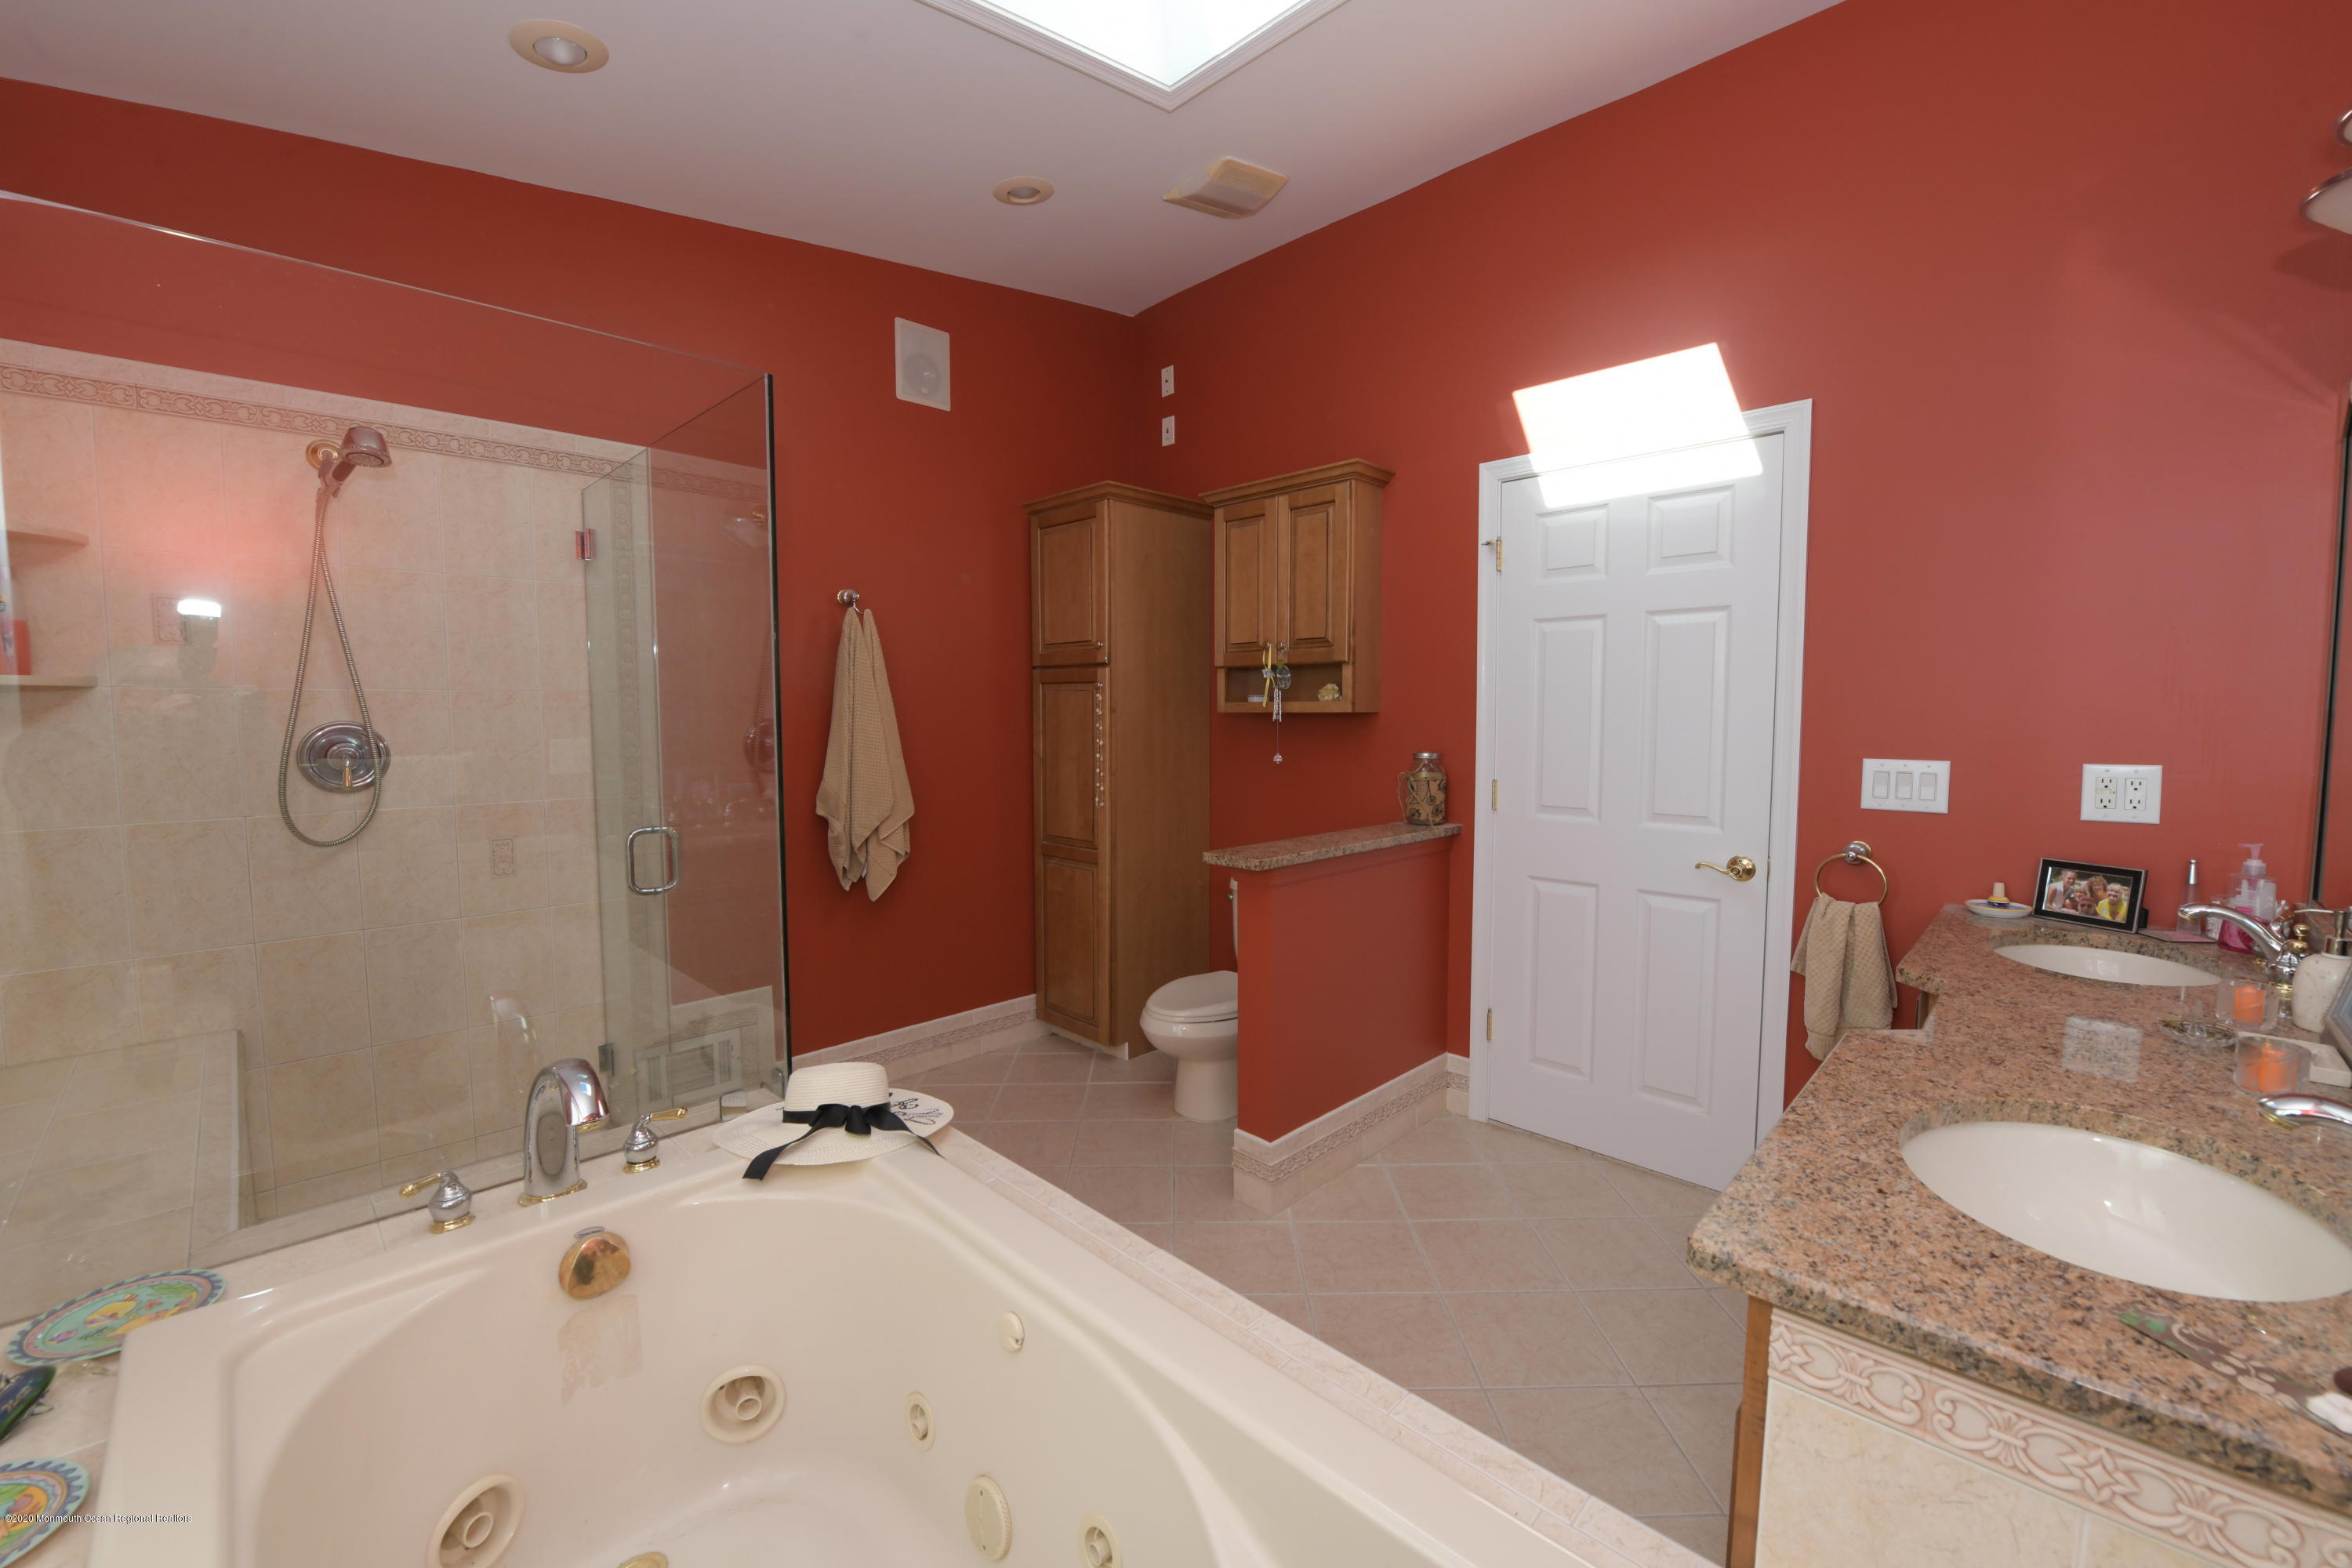 2304 Cardinal Drive, Point Pleasant, New Jersey 08742, 2 Bedrooms Bedrooms, ,2 BathroomsBathrooms,Single Family,For Sale,2304 Cardinal Drive,1,22040922